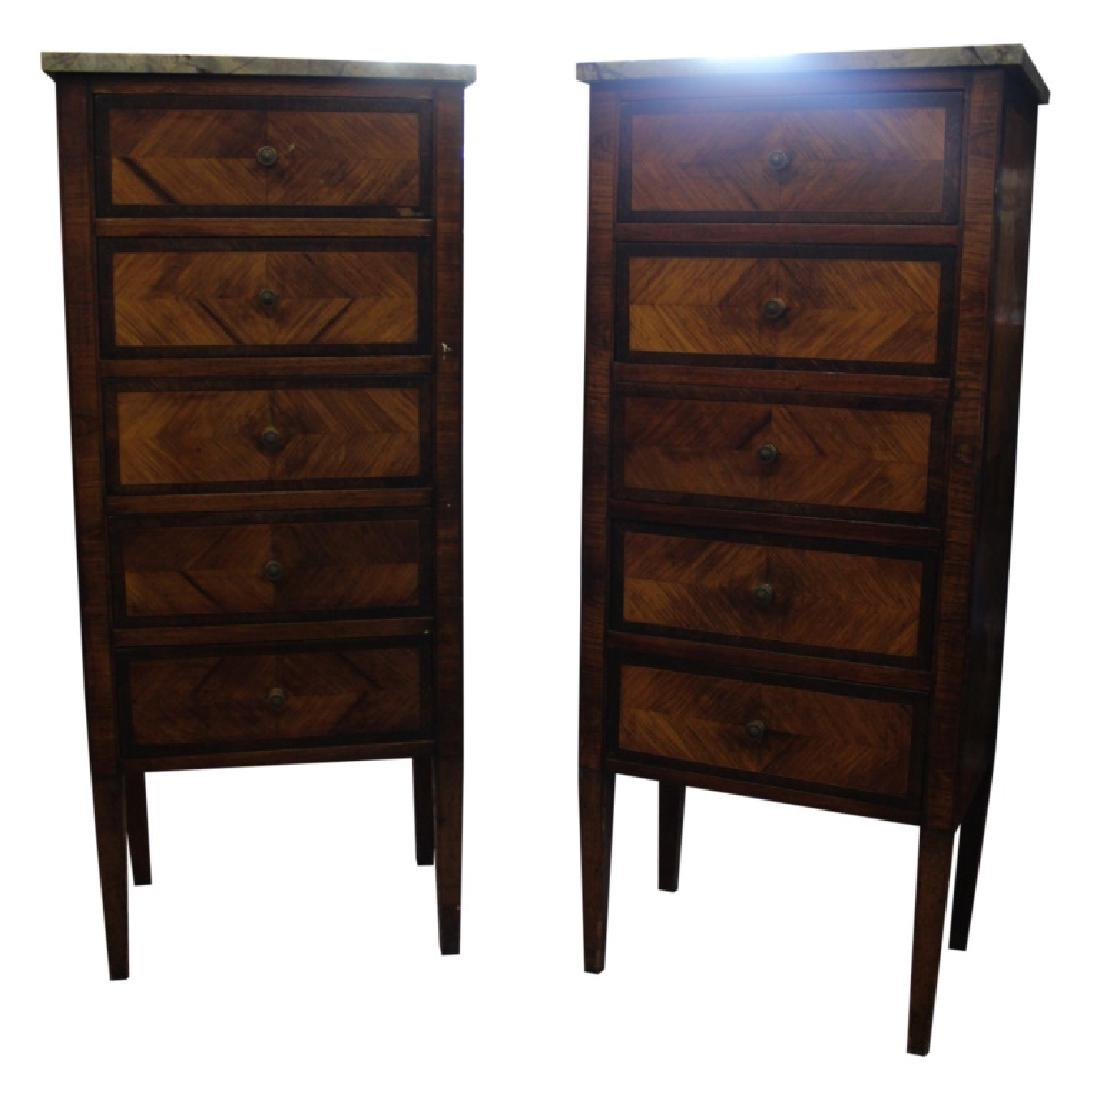 Pair of Marble Top Lingerie Chests - 2